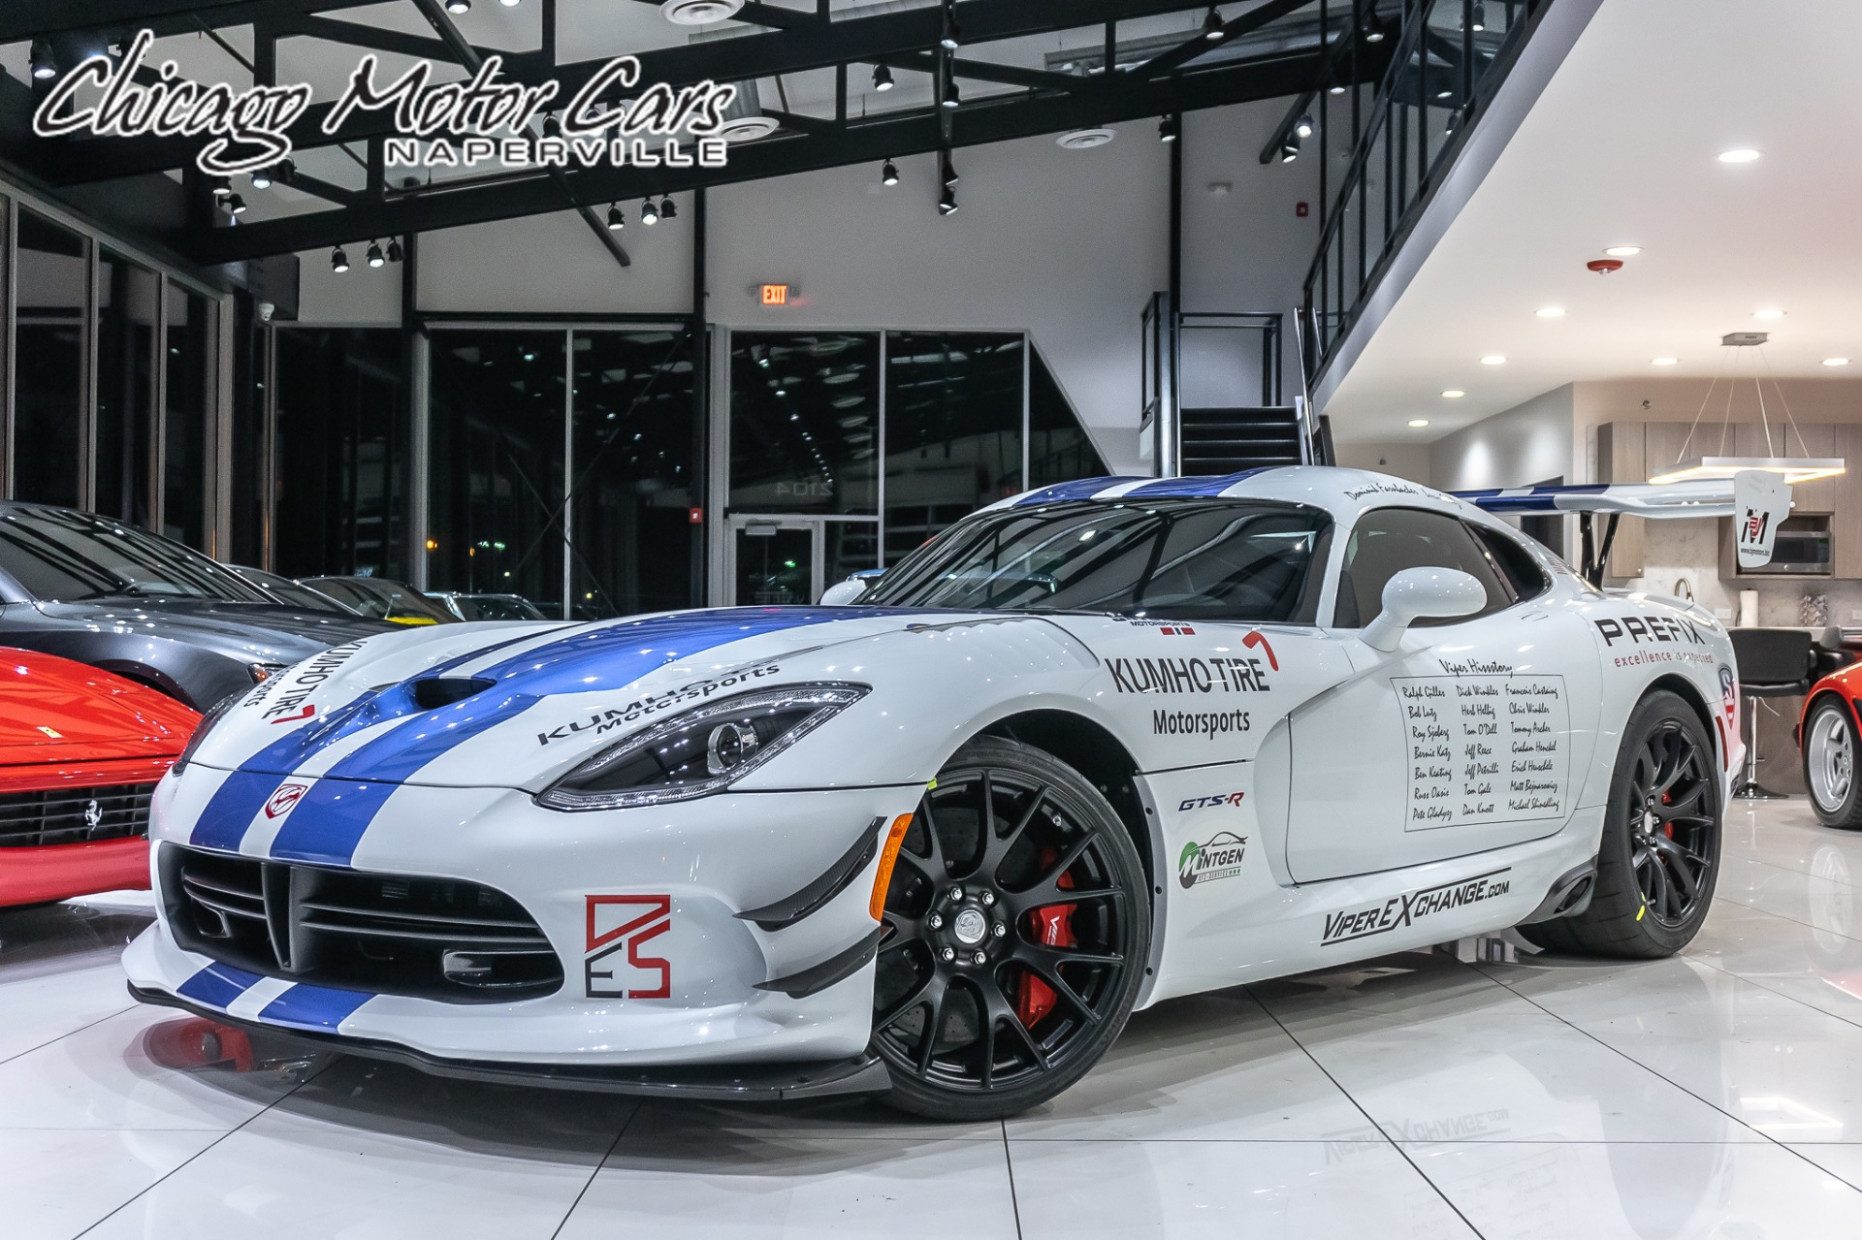 Used 11 Dodge Viper ACR GTS-R Nurburgring Commemorative Edition ..